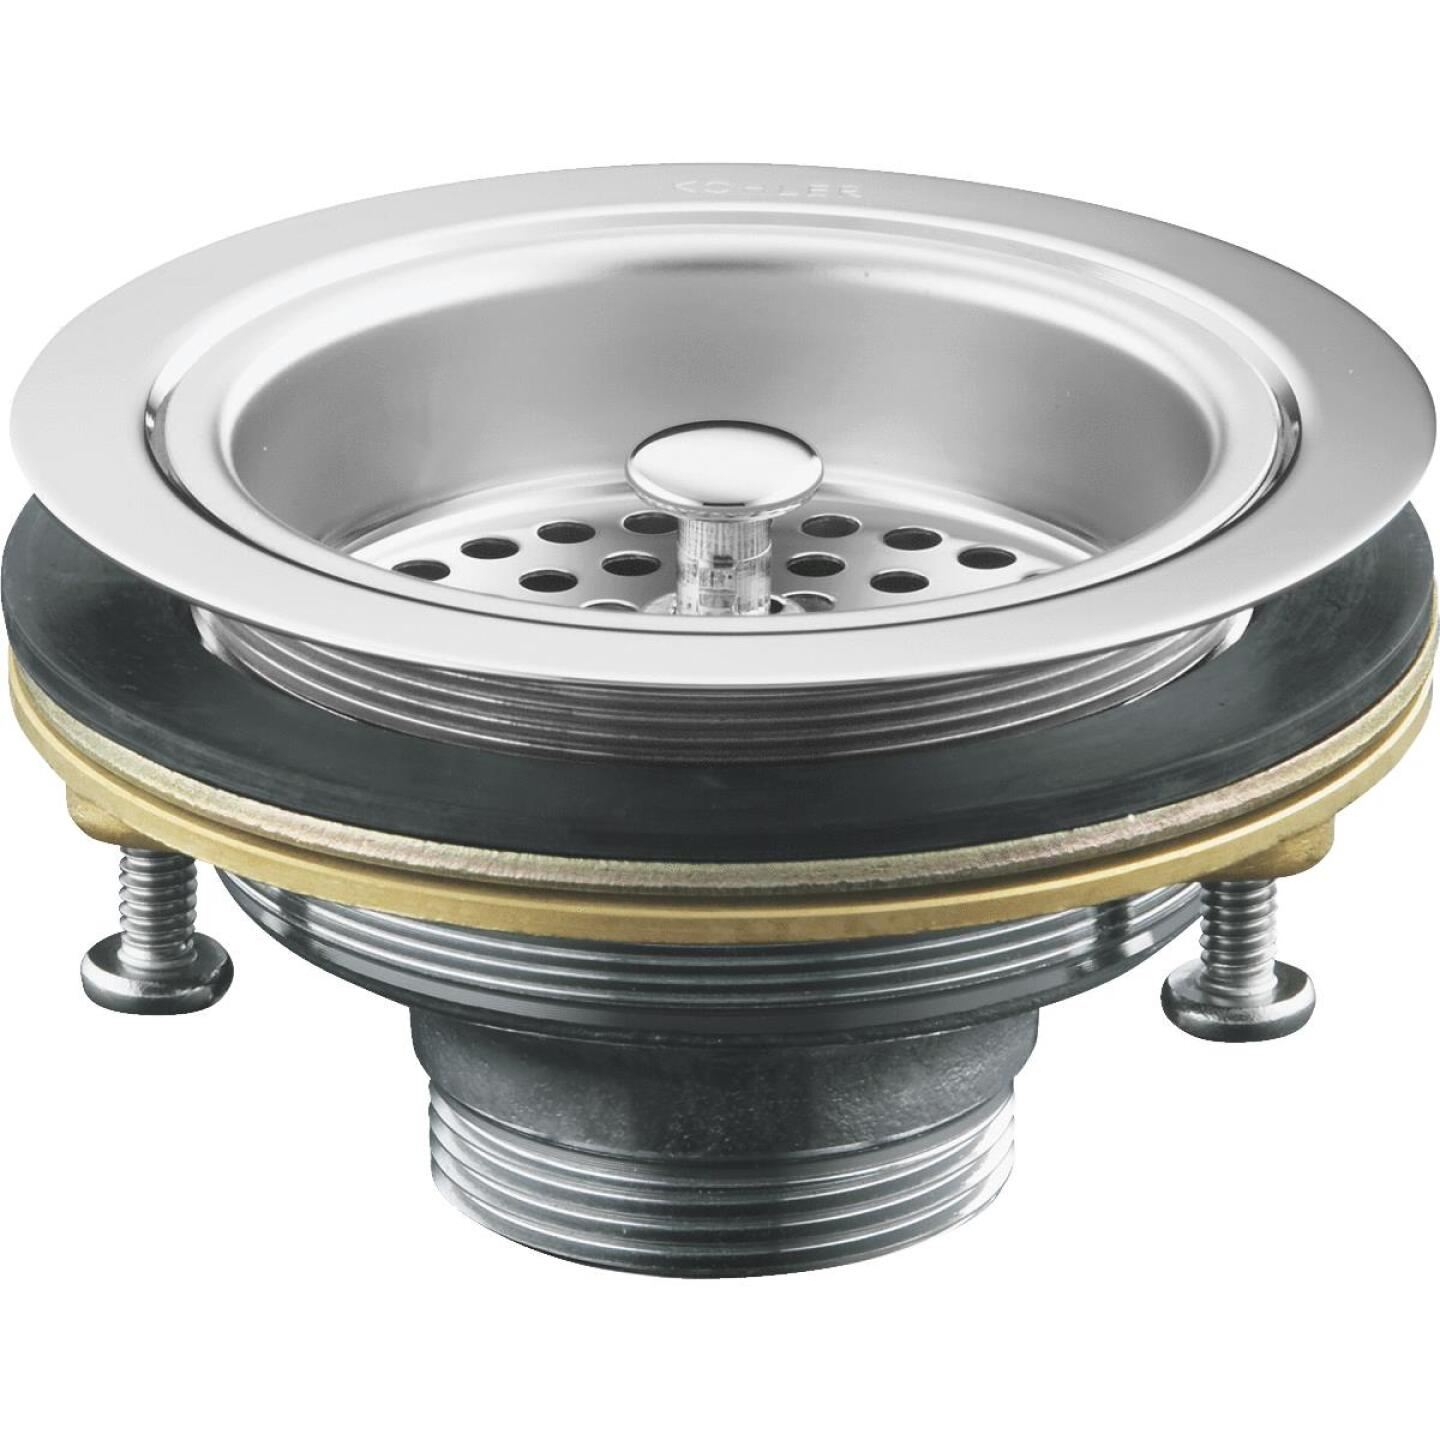 Kohler Duostrainer 3-1/2 In. to 4 In. Opening Basket Strainer Assembly in Polished Chrome Finish Image 1